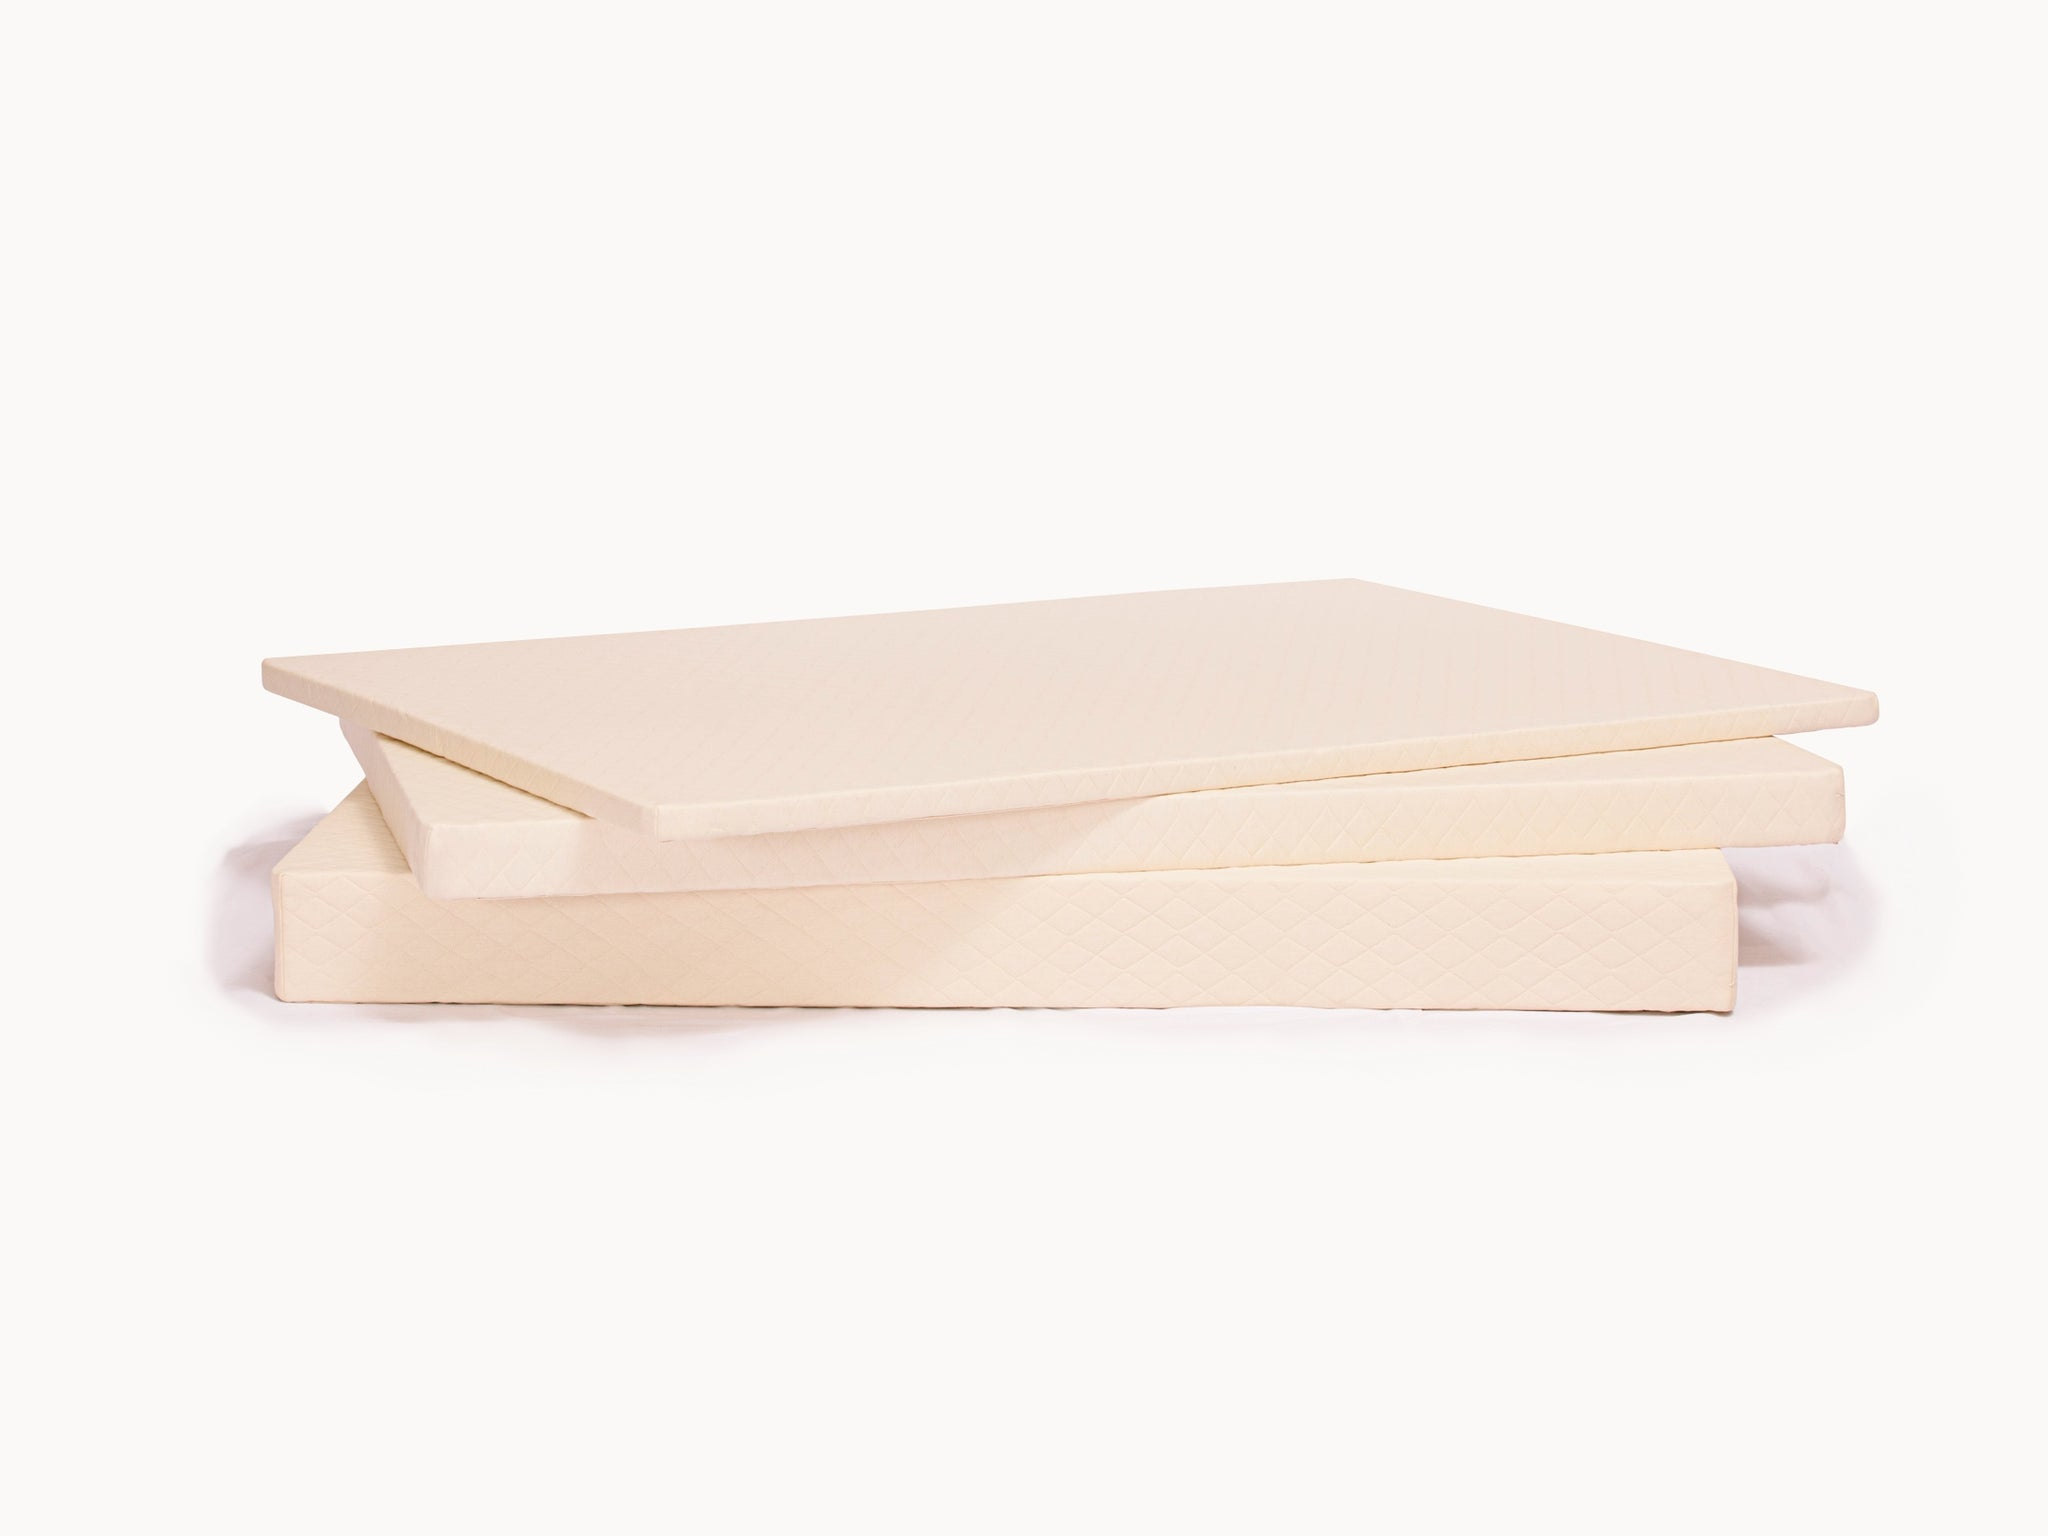 Organic Mattress Foundation - PJs Sleep Company | Luxury Organic Mattresses & Bedding